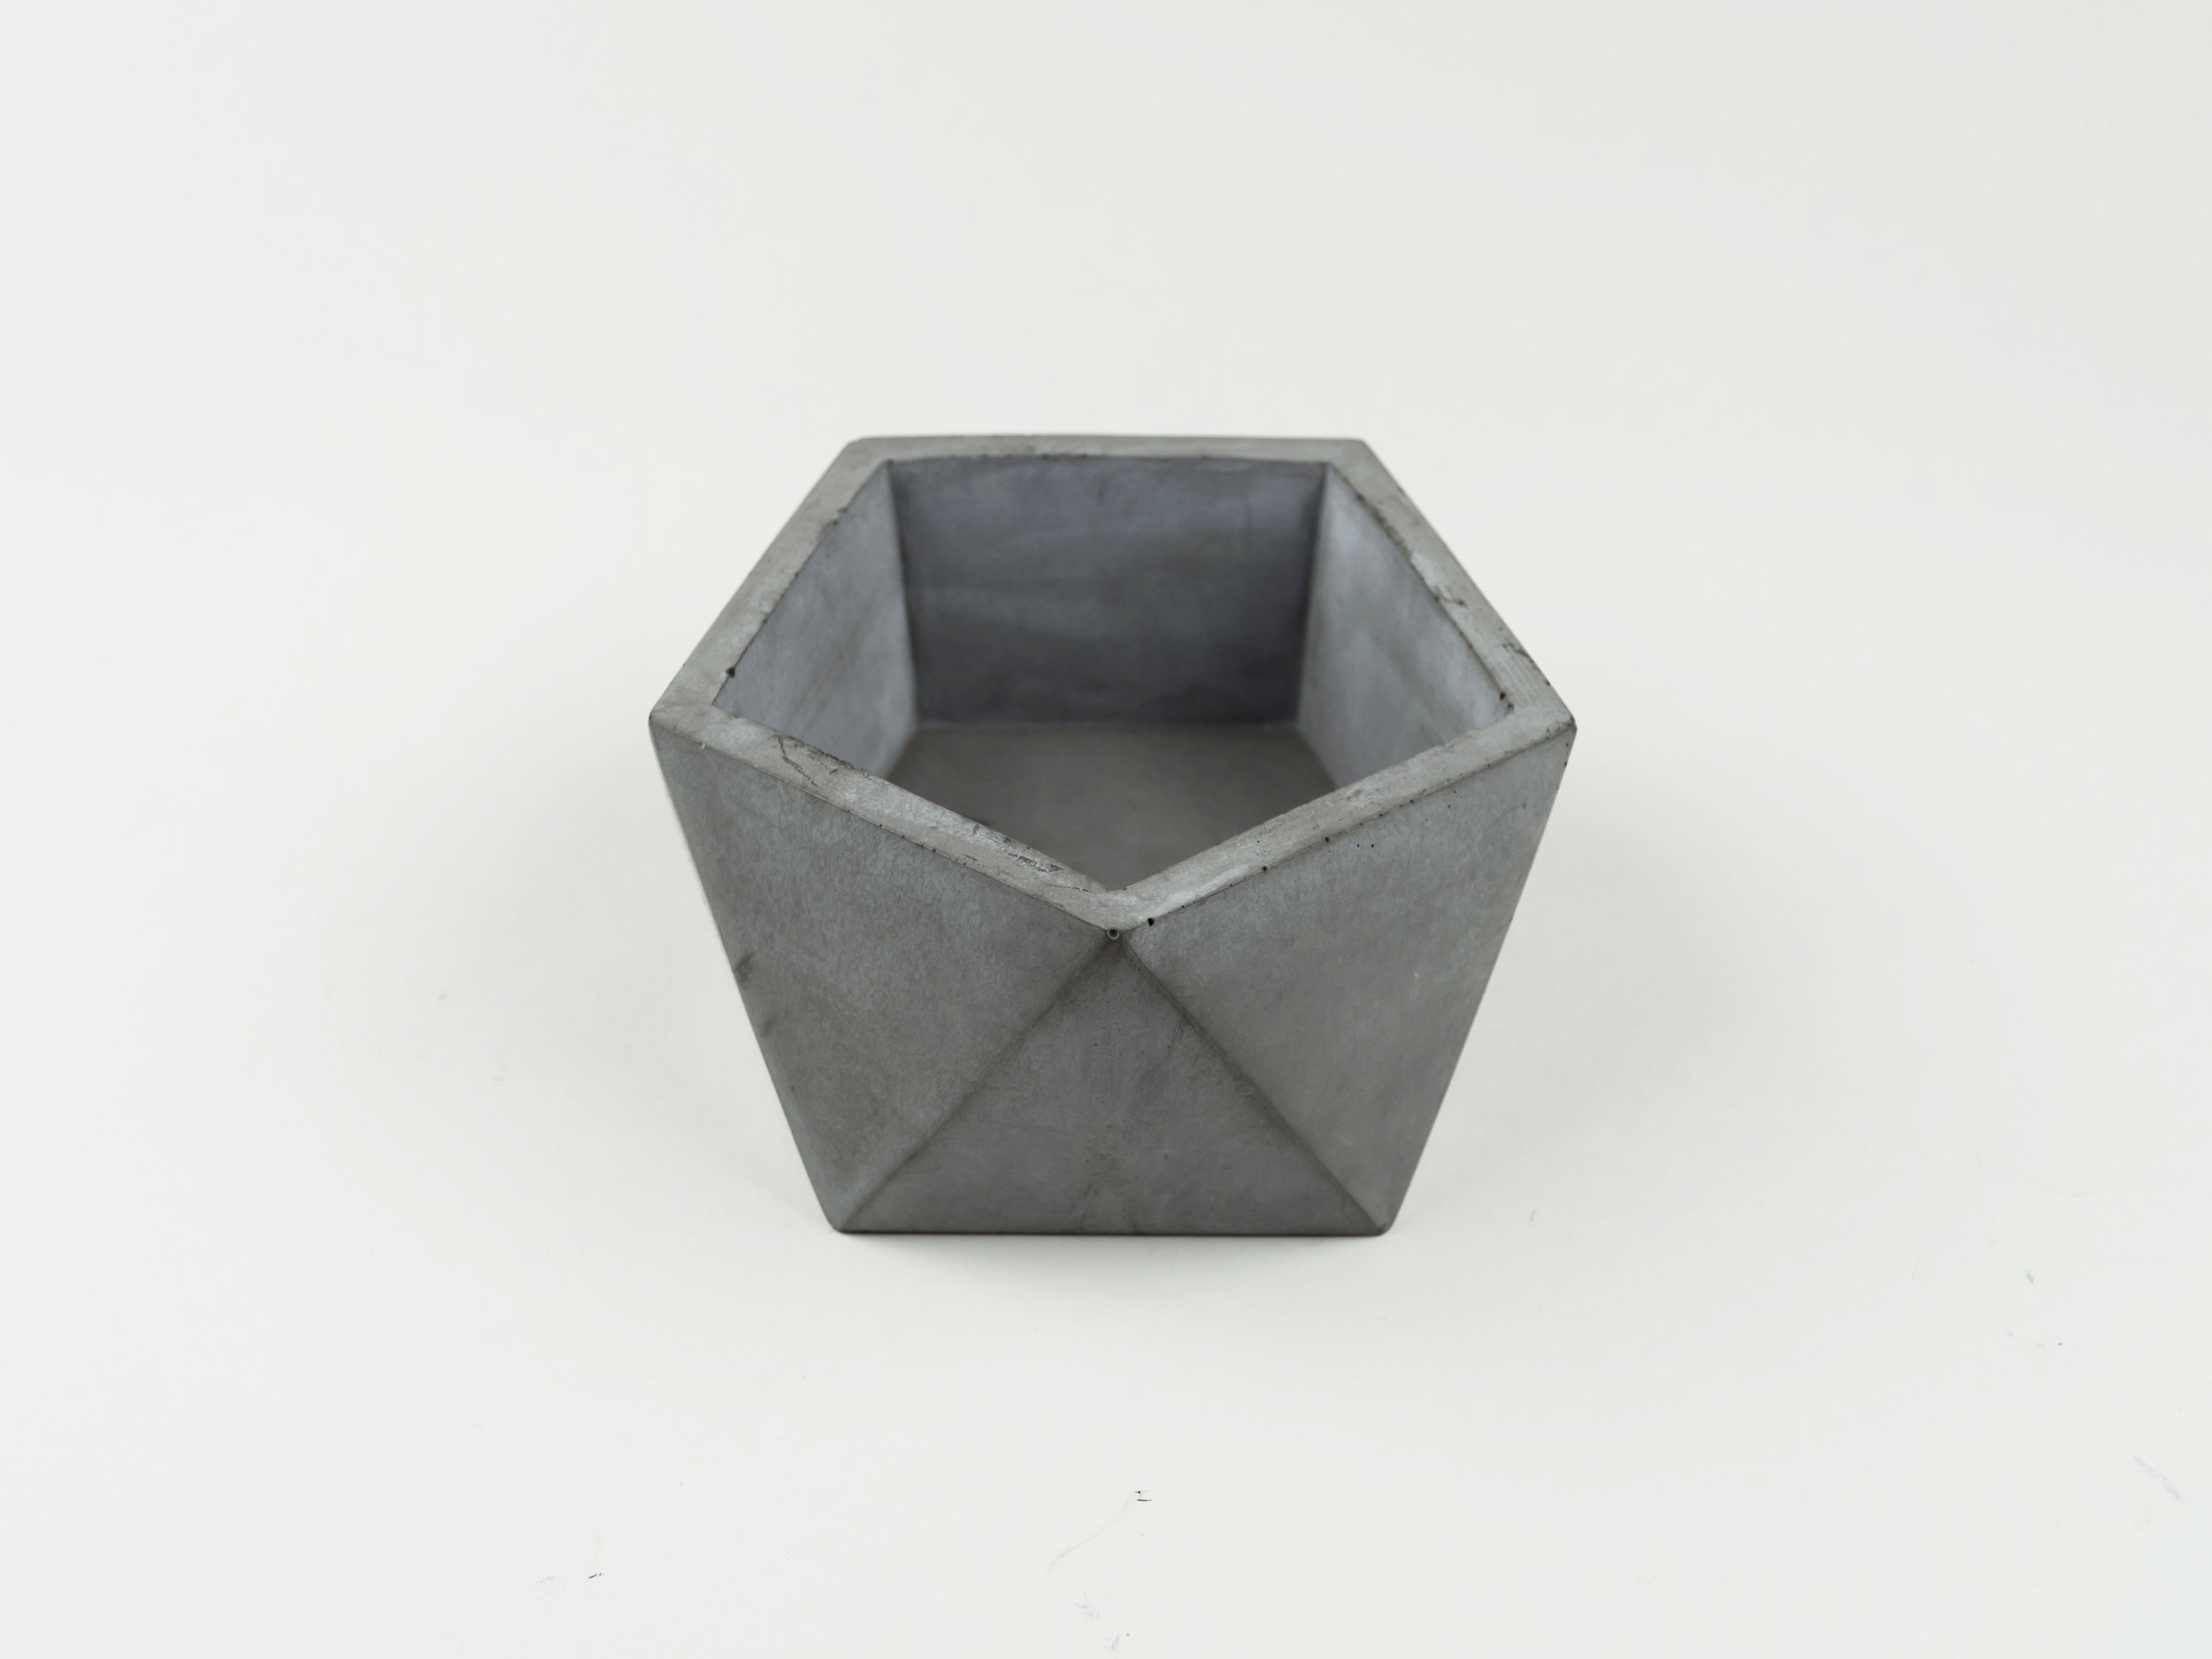 Copy of Dark Gray Colored Concrete Vessel Handmade by The Savvy Heart